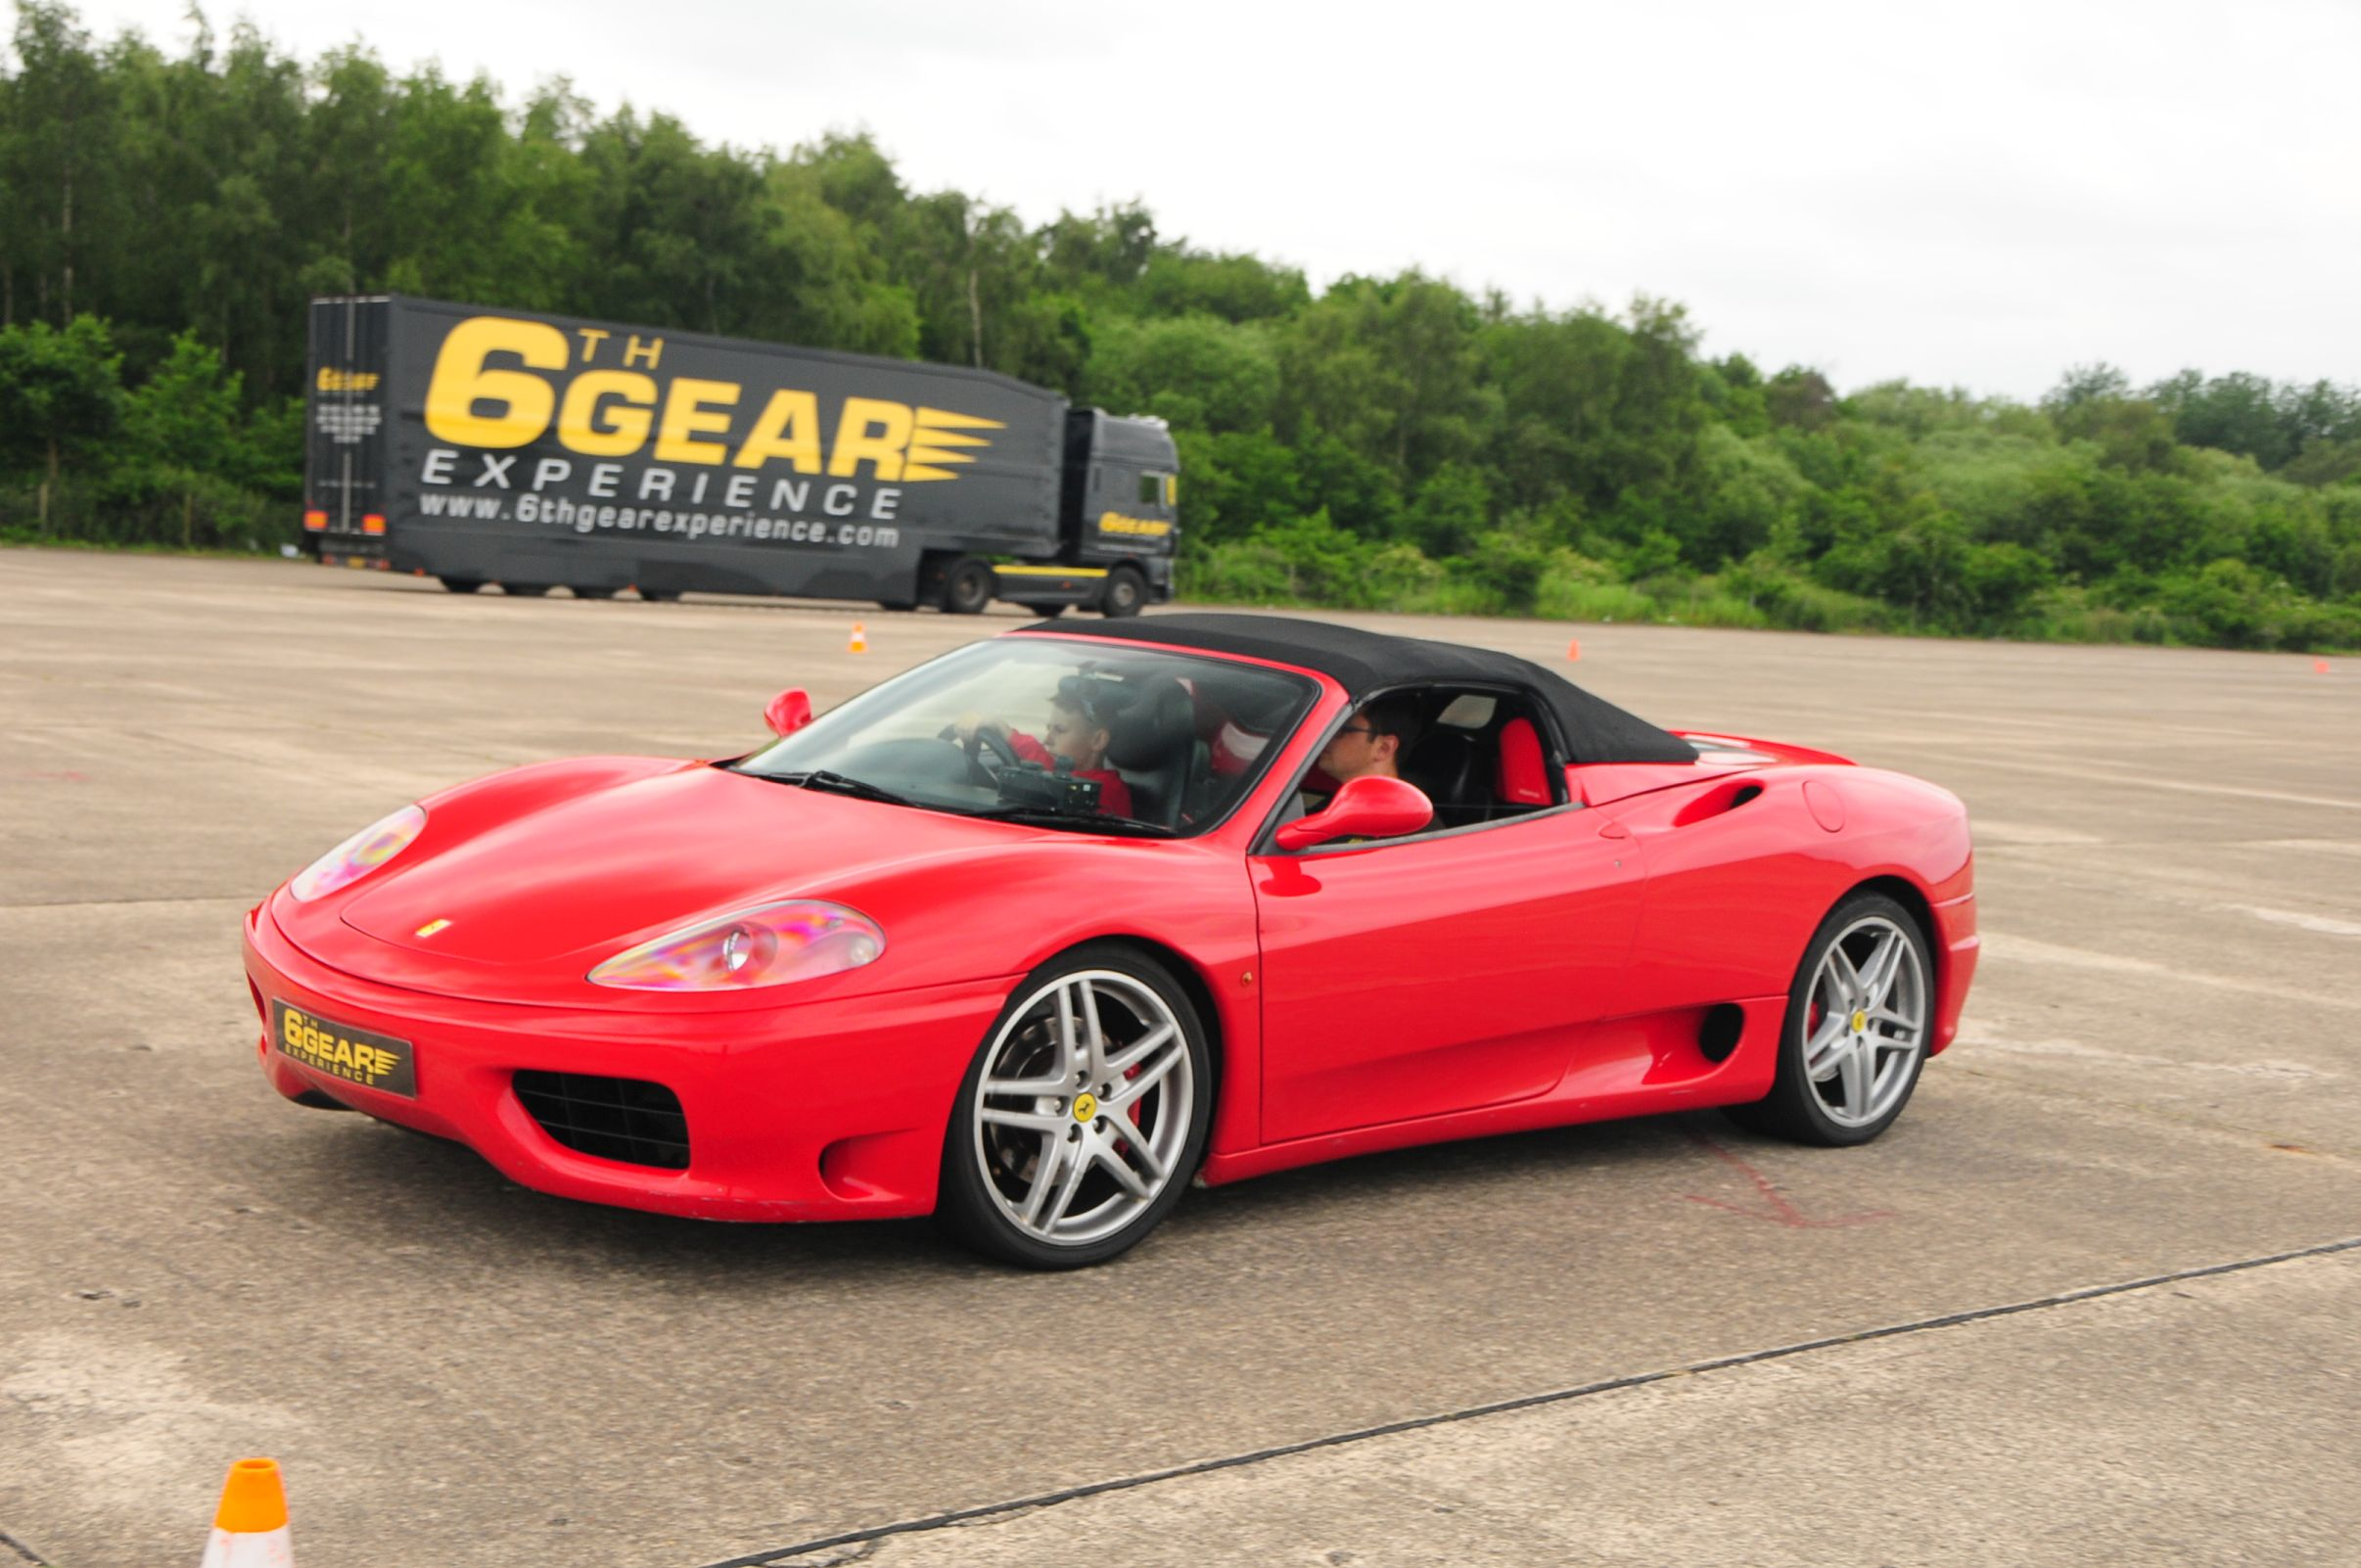 Junior Supercar Driving Experience With Supercar Hot Lap